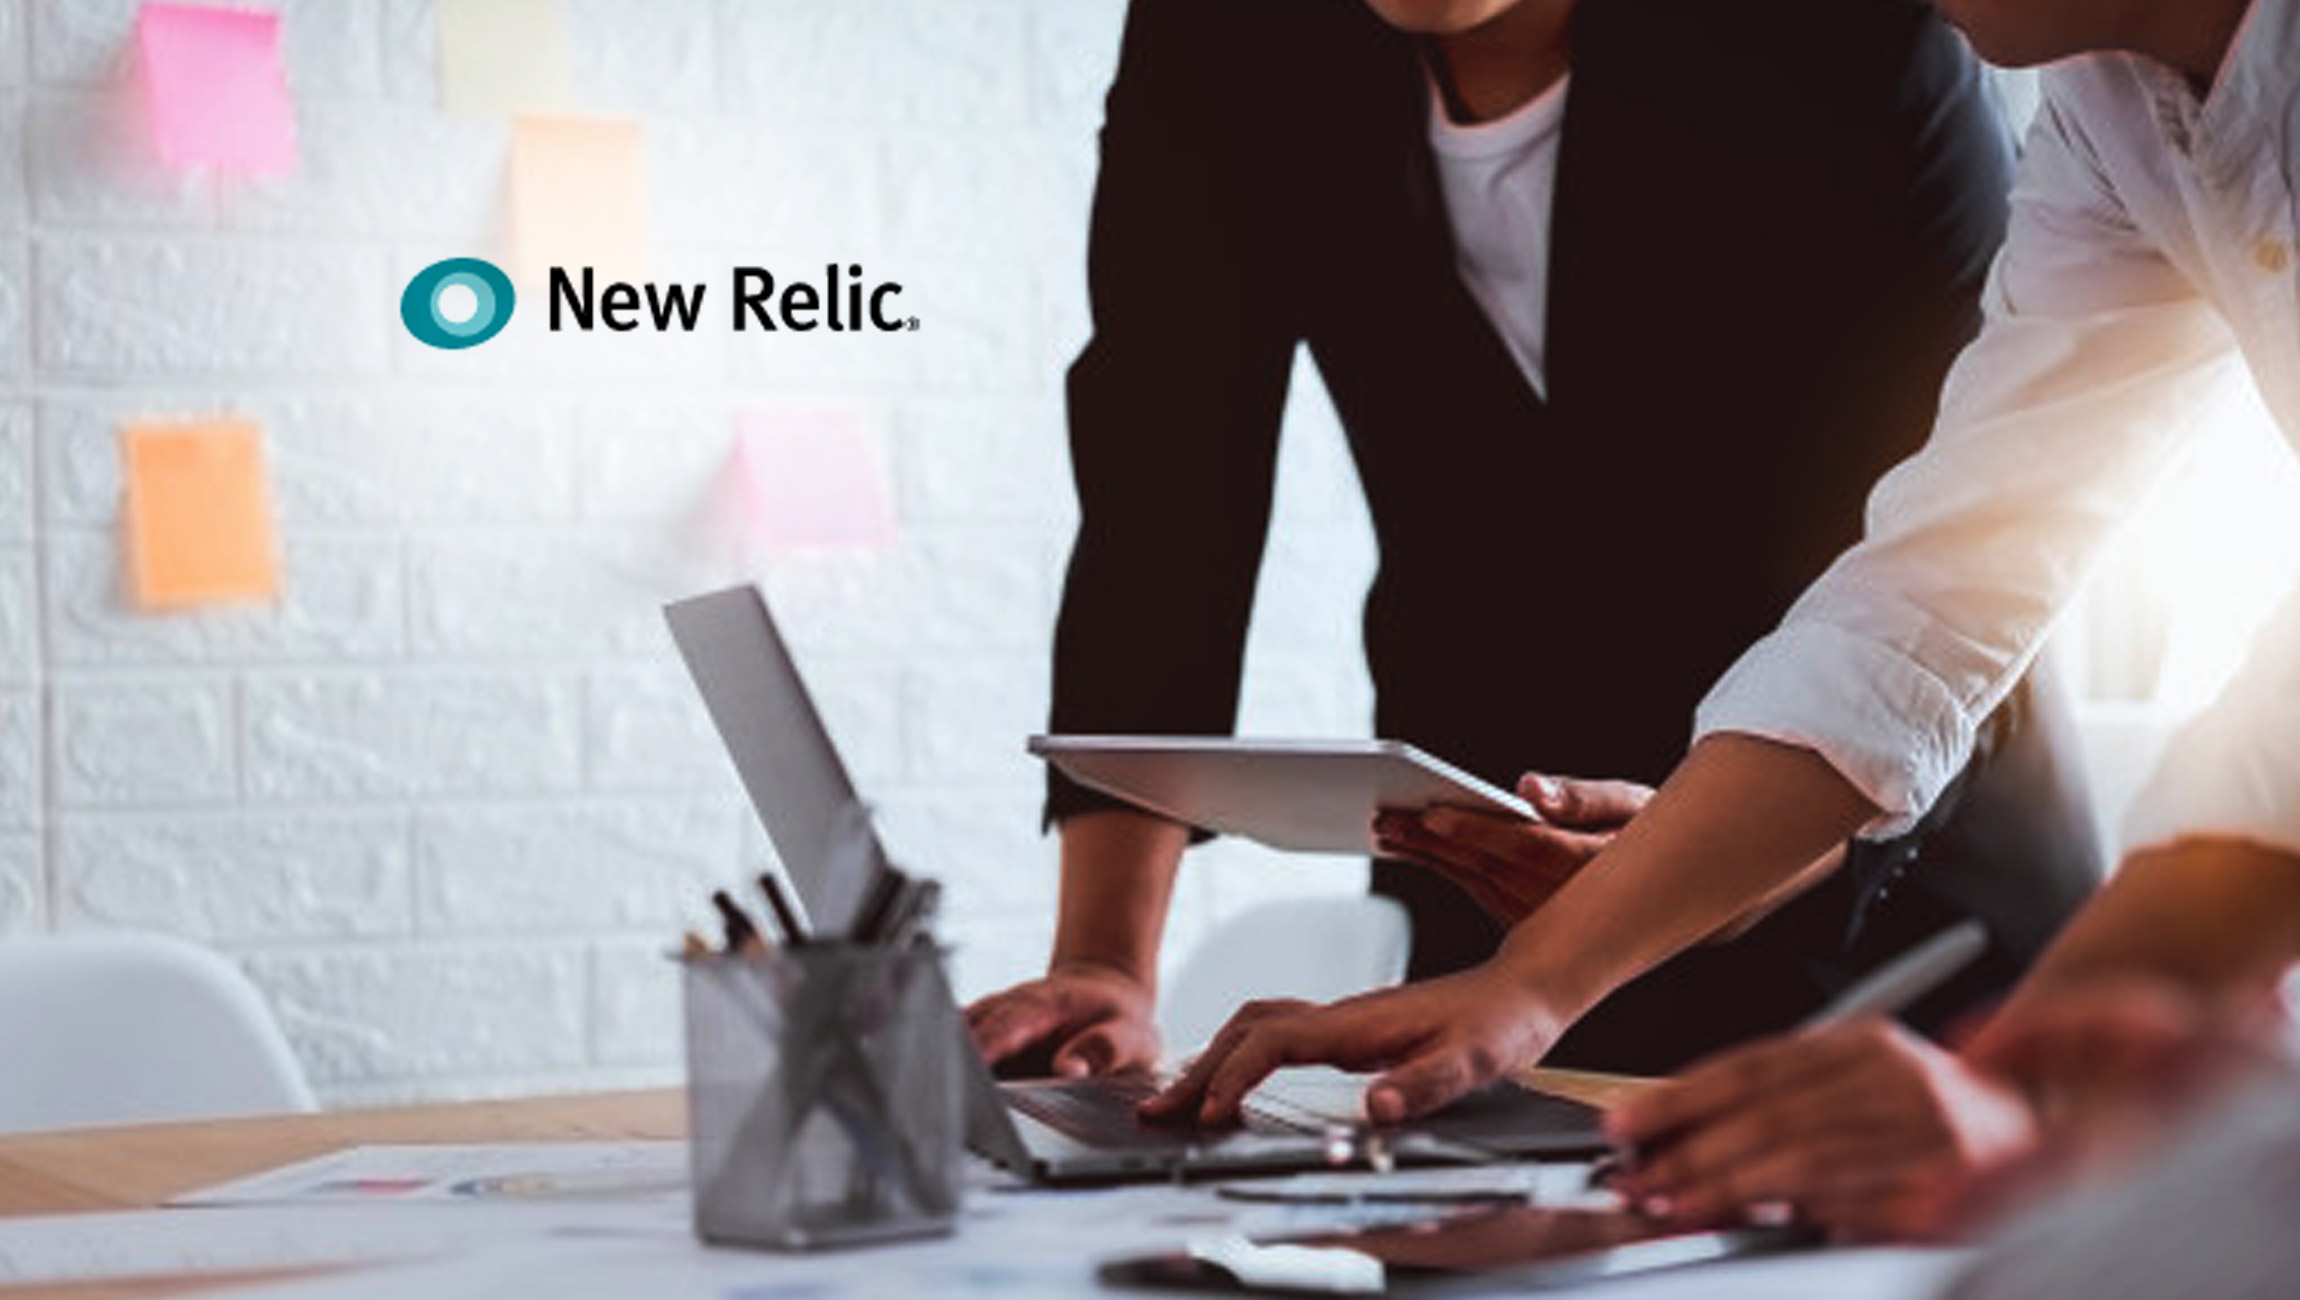 New Relic Expands Global Strategic Collaboration Agreement with AWS to Help Companies Accelerate Their Cloud Adoption Journey